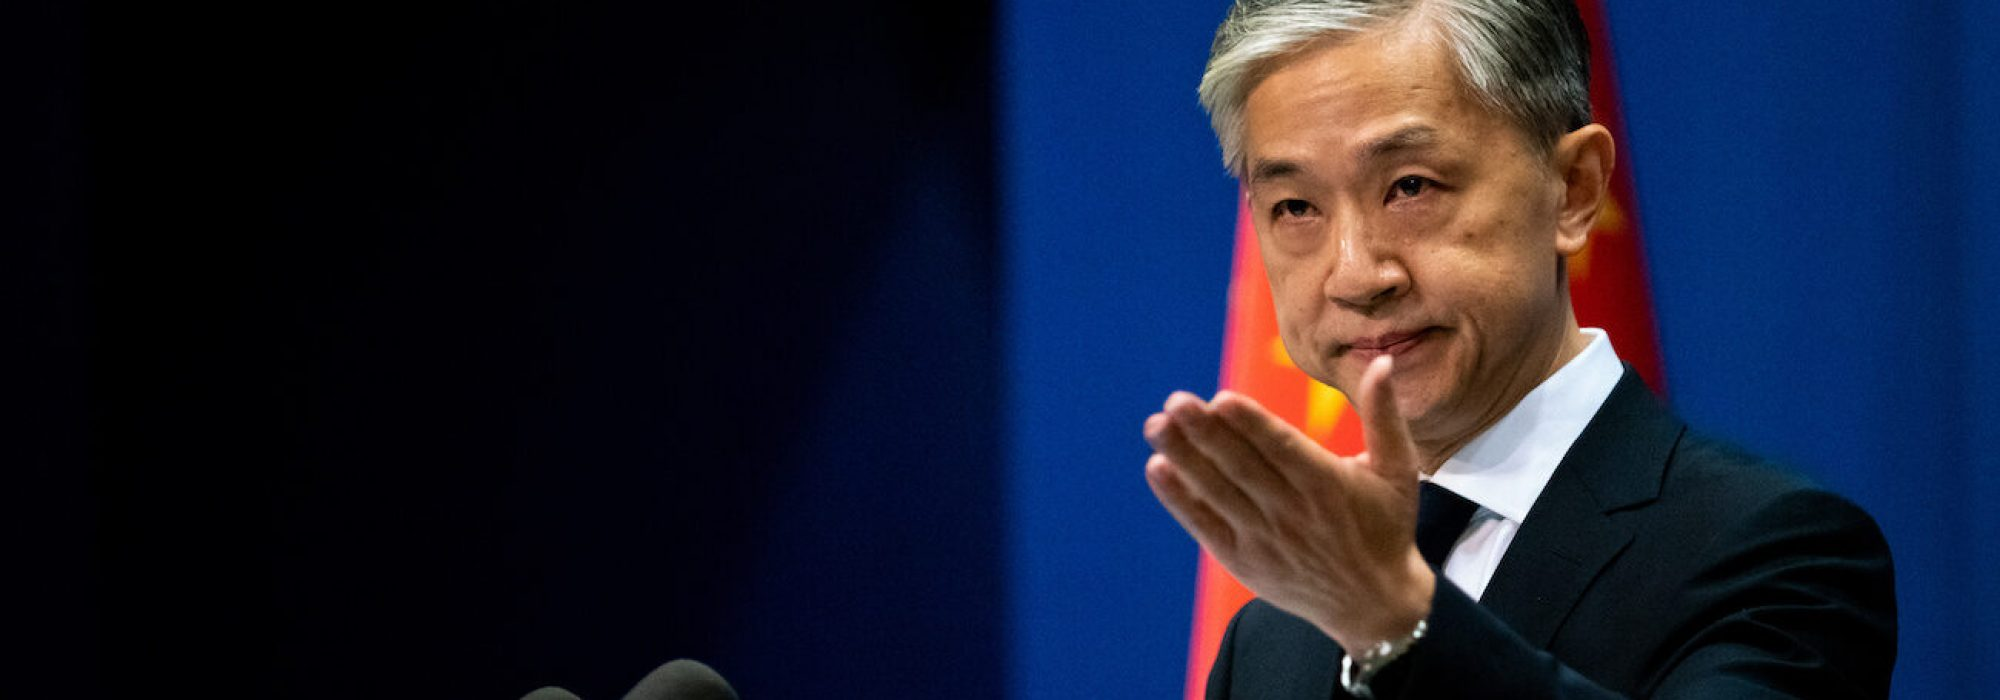 BEIJING, CHINA - JULY 20, 2020: China's new Foreign Ministry spokesperson Wang Wenbin gives a press conference. Artyom Ivanov/TASS,Image: 545245452, License: Rights-managed, Restrictions: , Model Release: no, Credit line: Artyom Ivanov / TASS / Forum